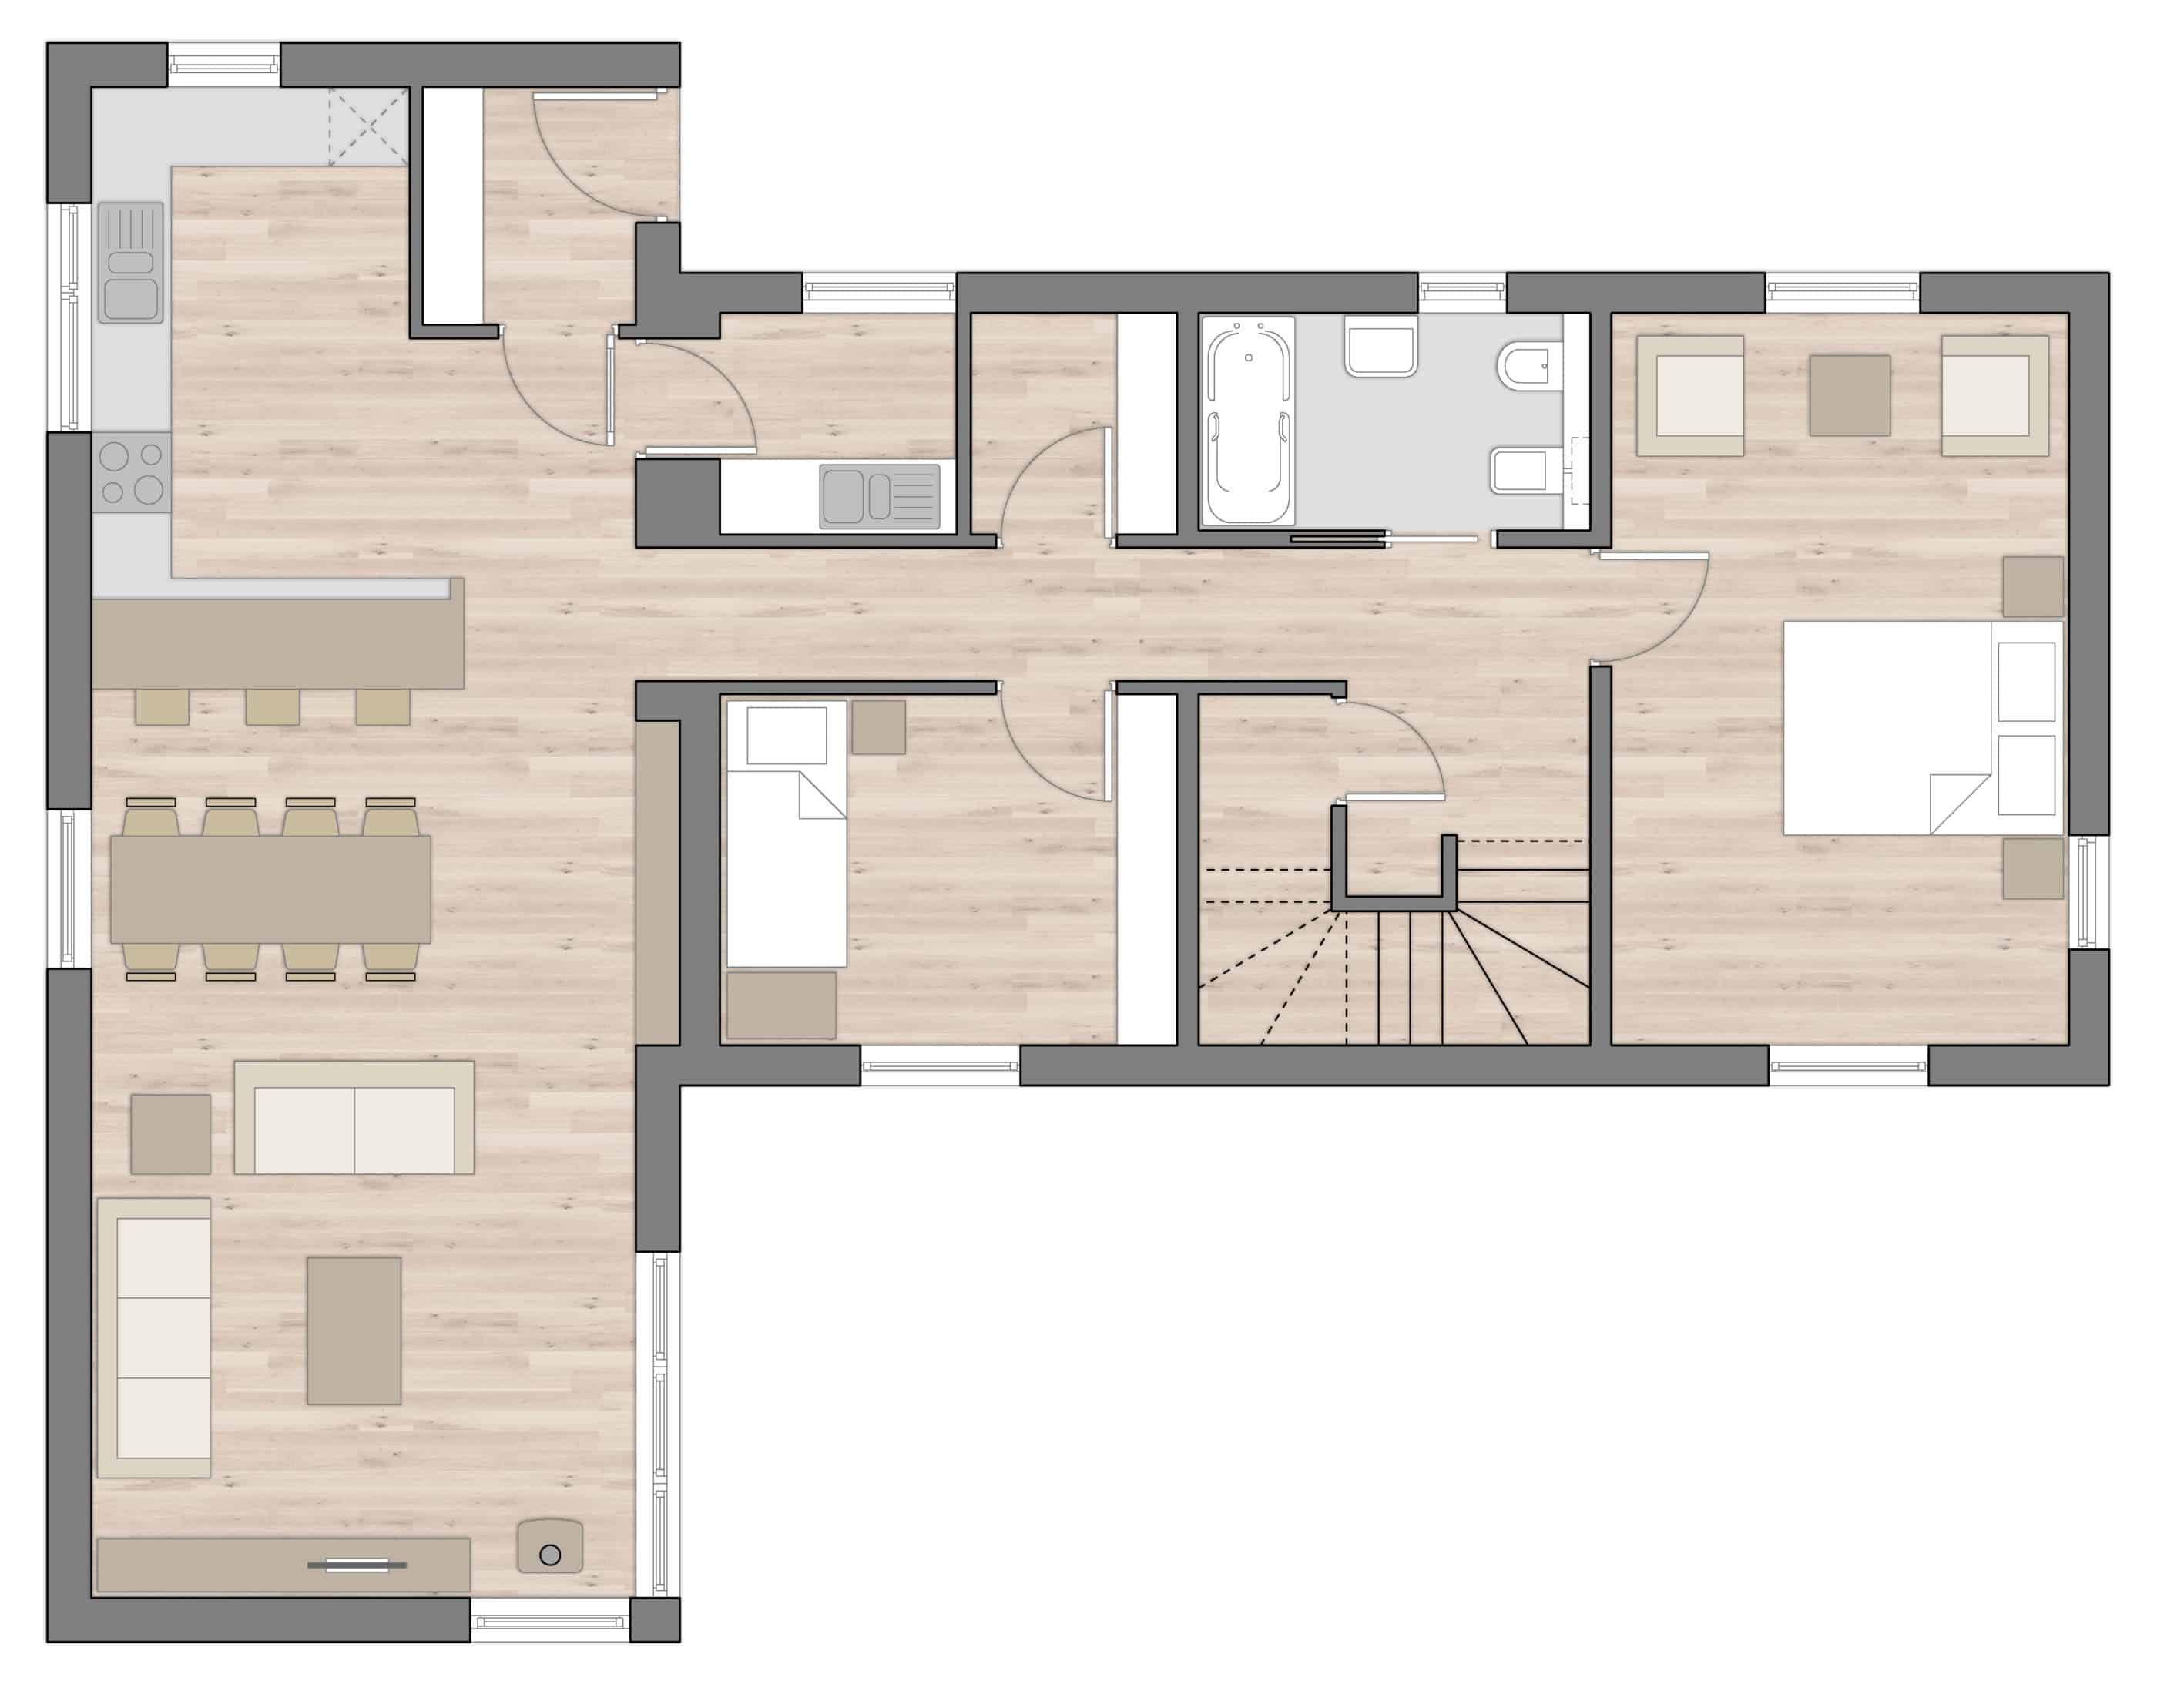 R4 Ground Floor Plans